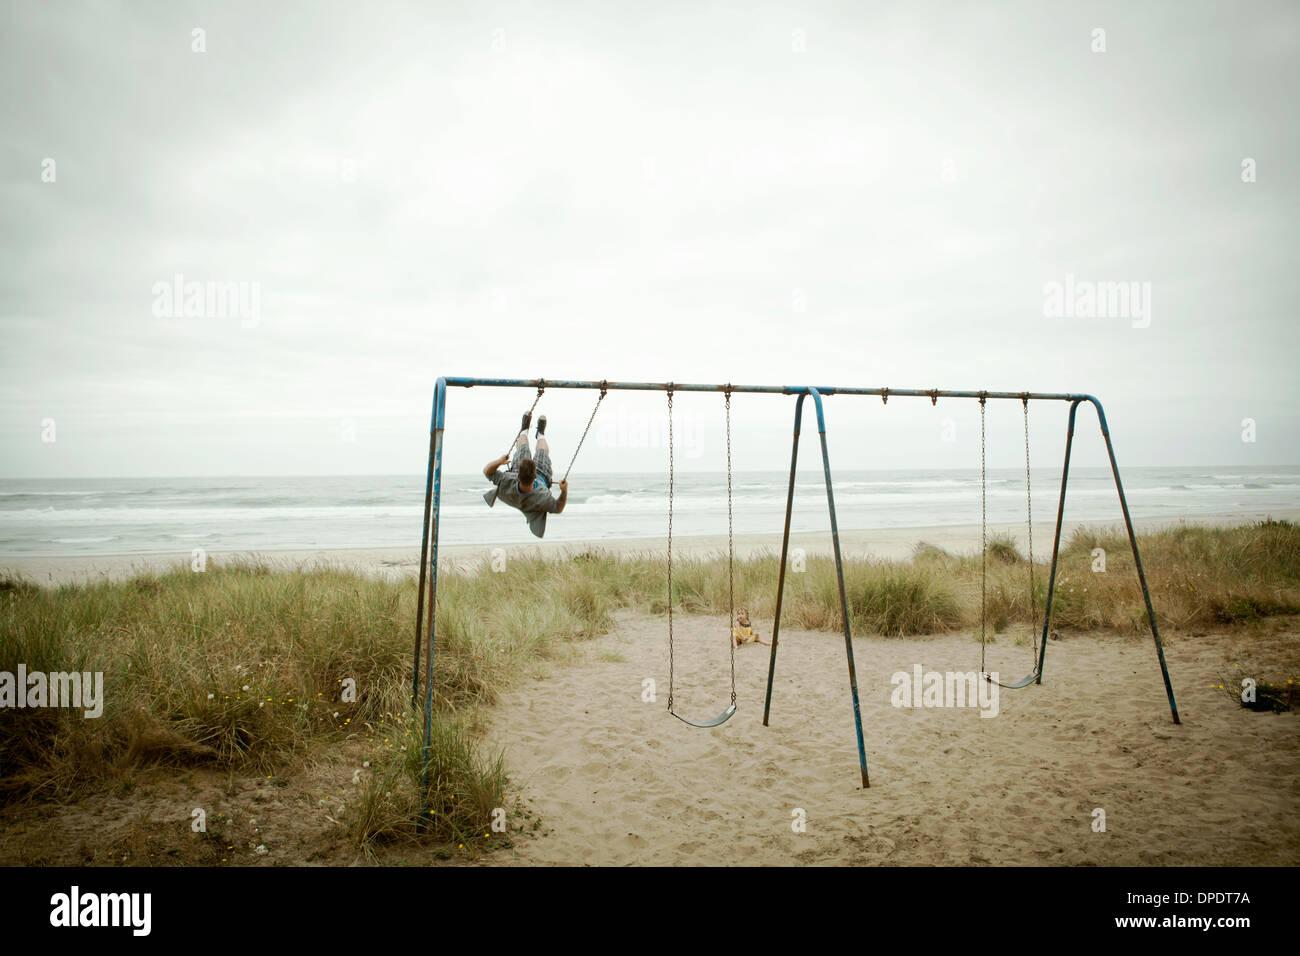 Female toddler watching father on beach swing Photo Stock